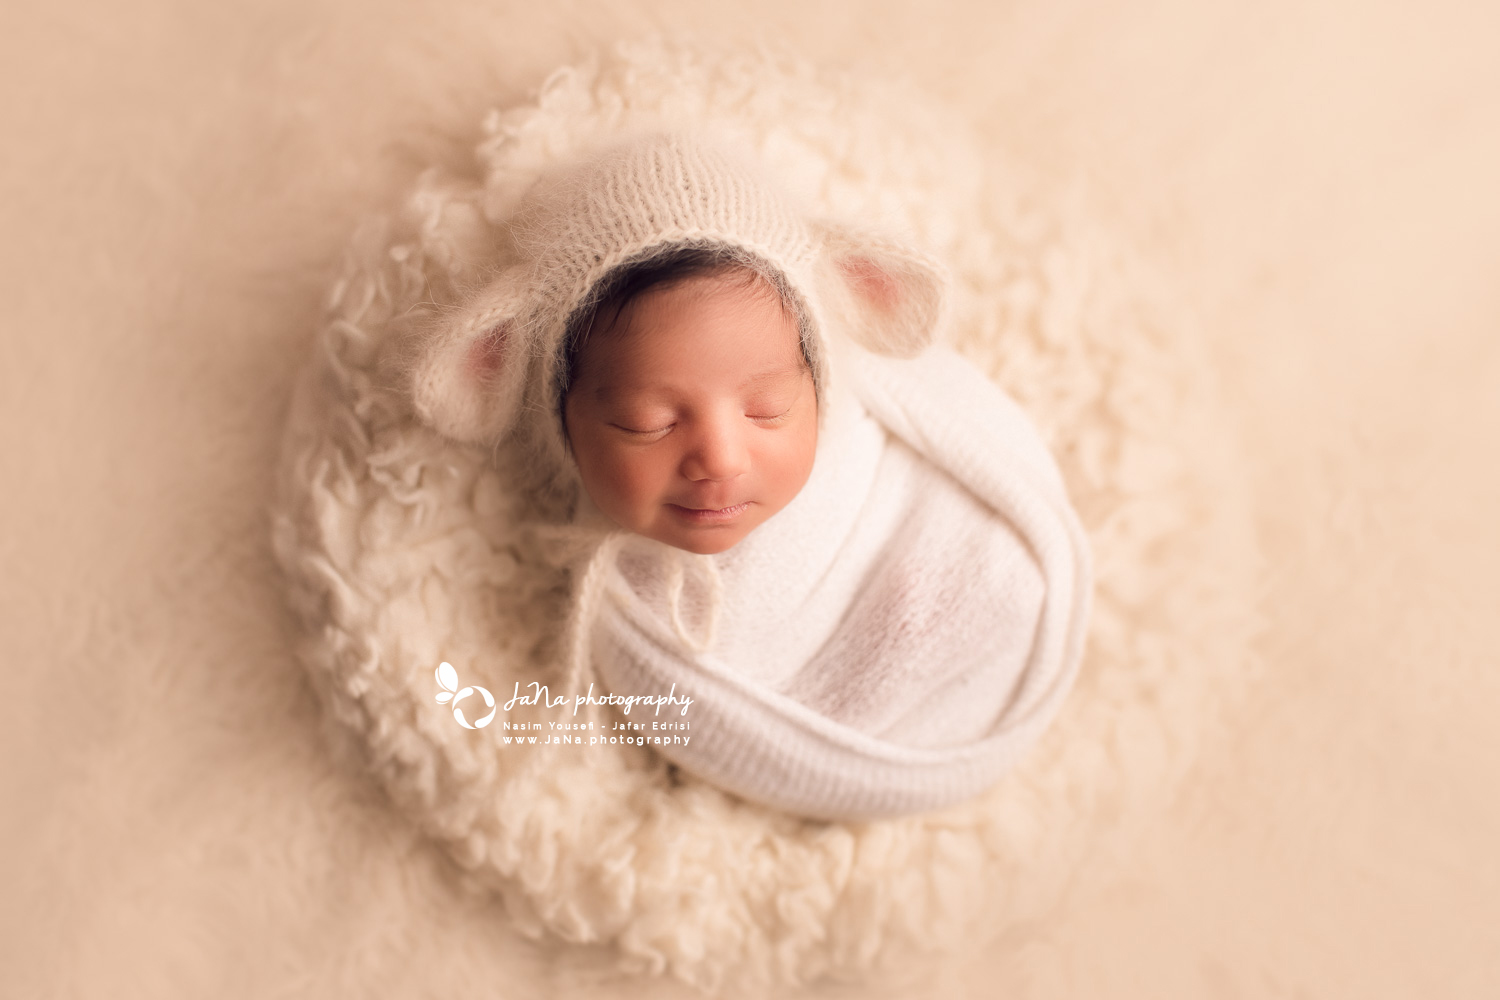 newborn baby girl with cute sheep hat - white fur